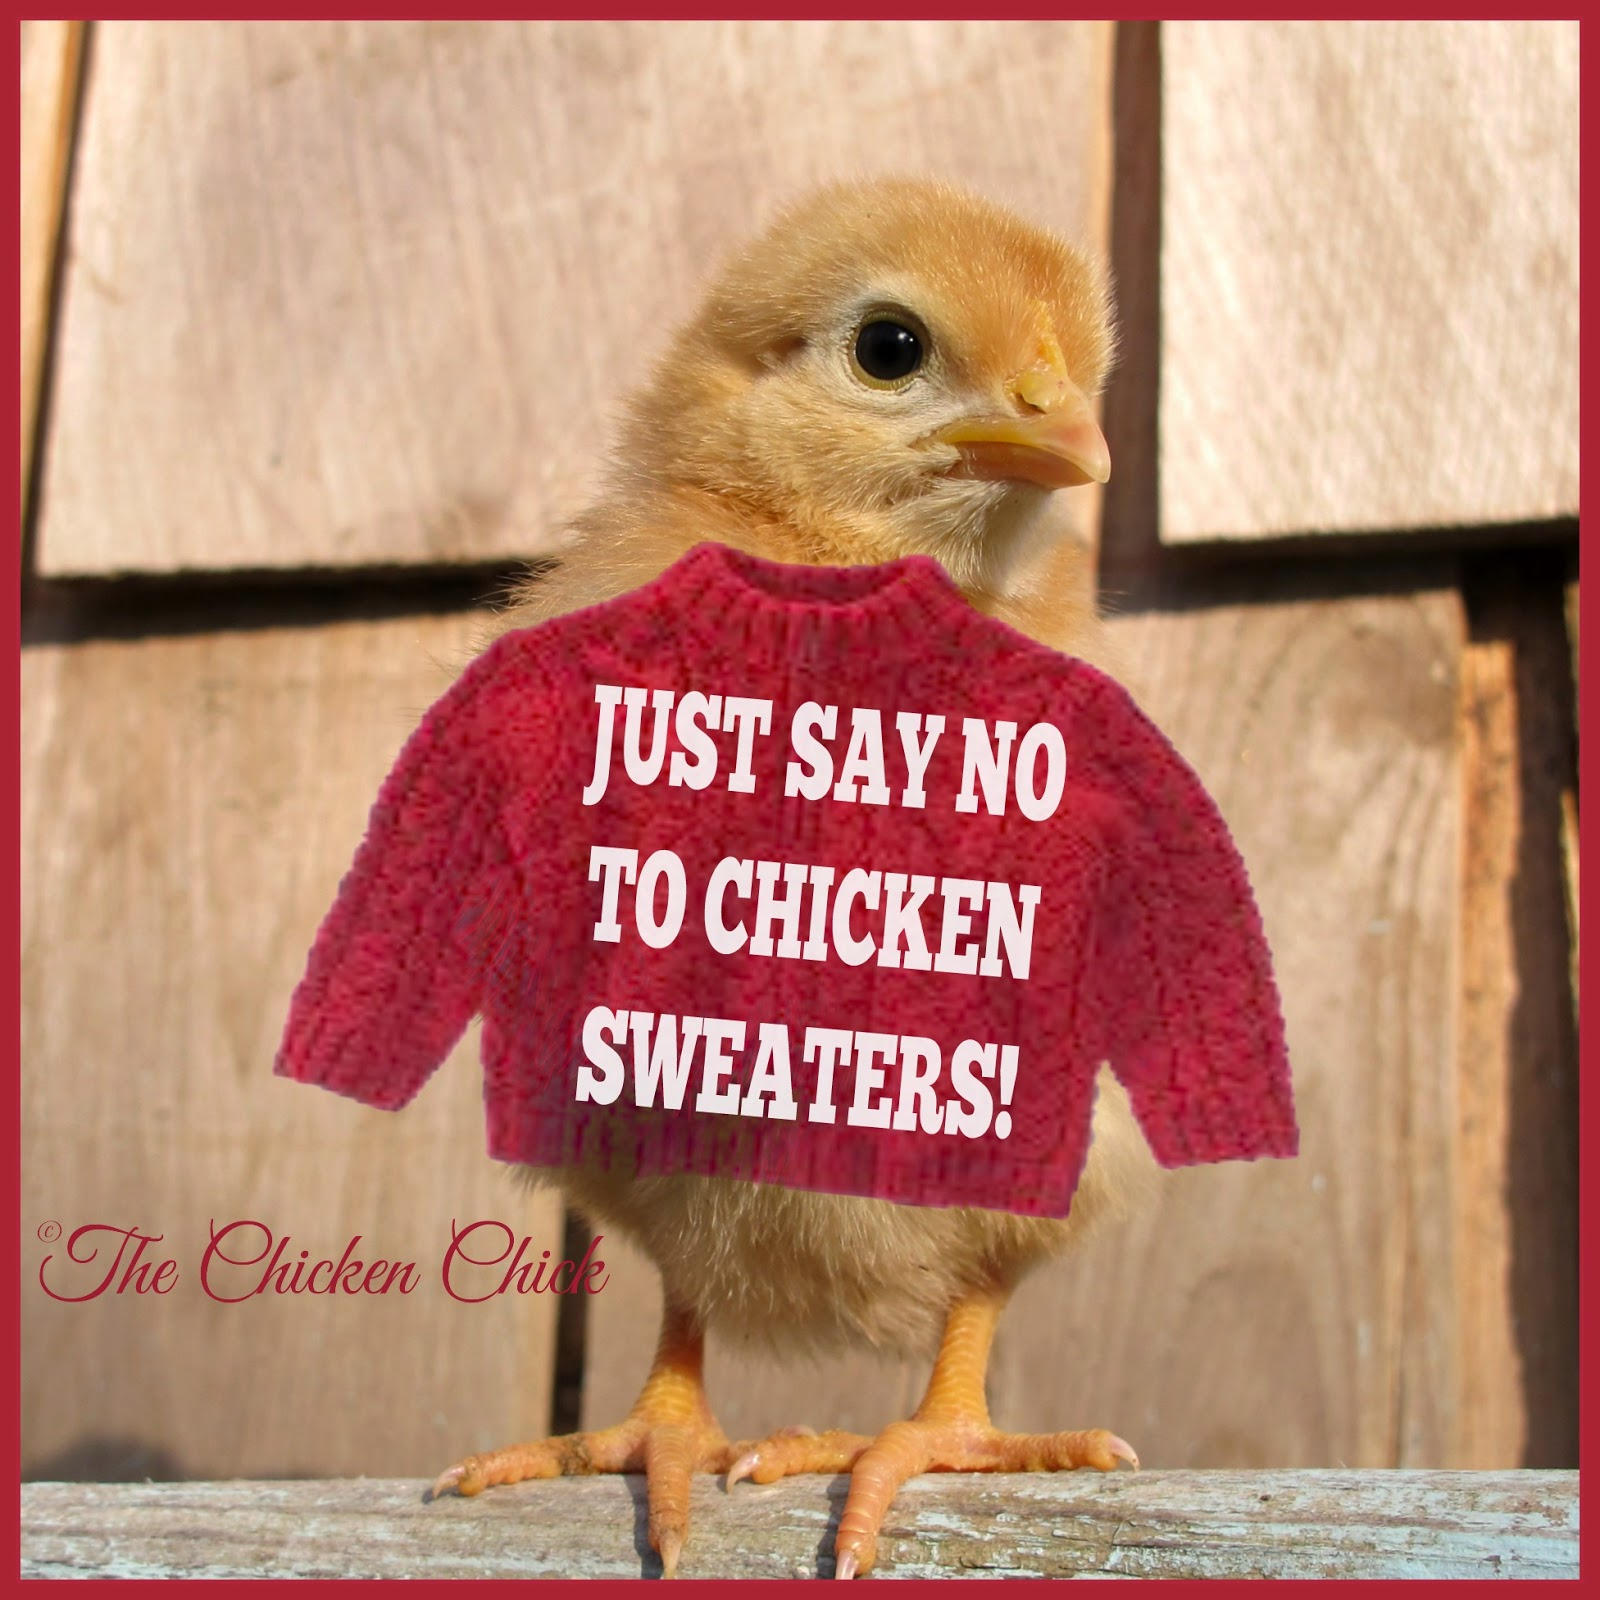 While it's fine to engage in a little silliness with our chickens from time-to-time, sweaters are not only unnecessary, they can be dangerous.